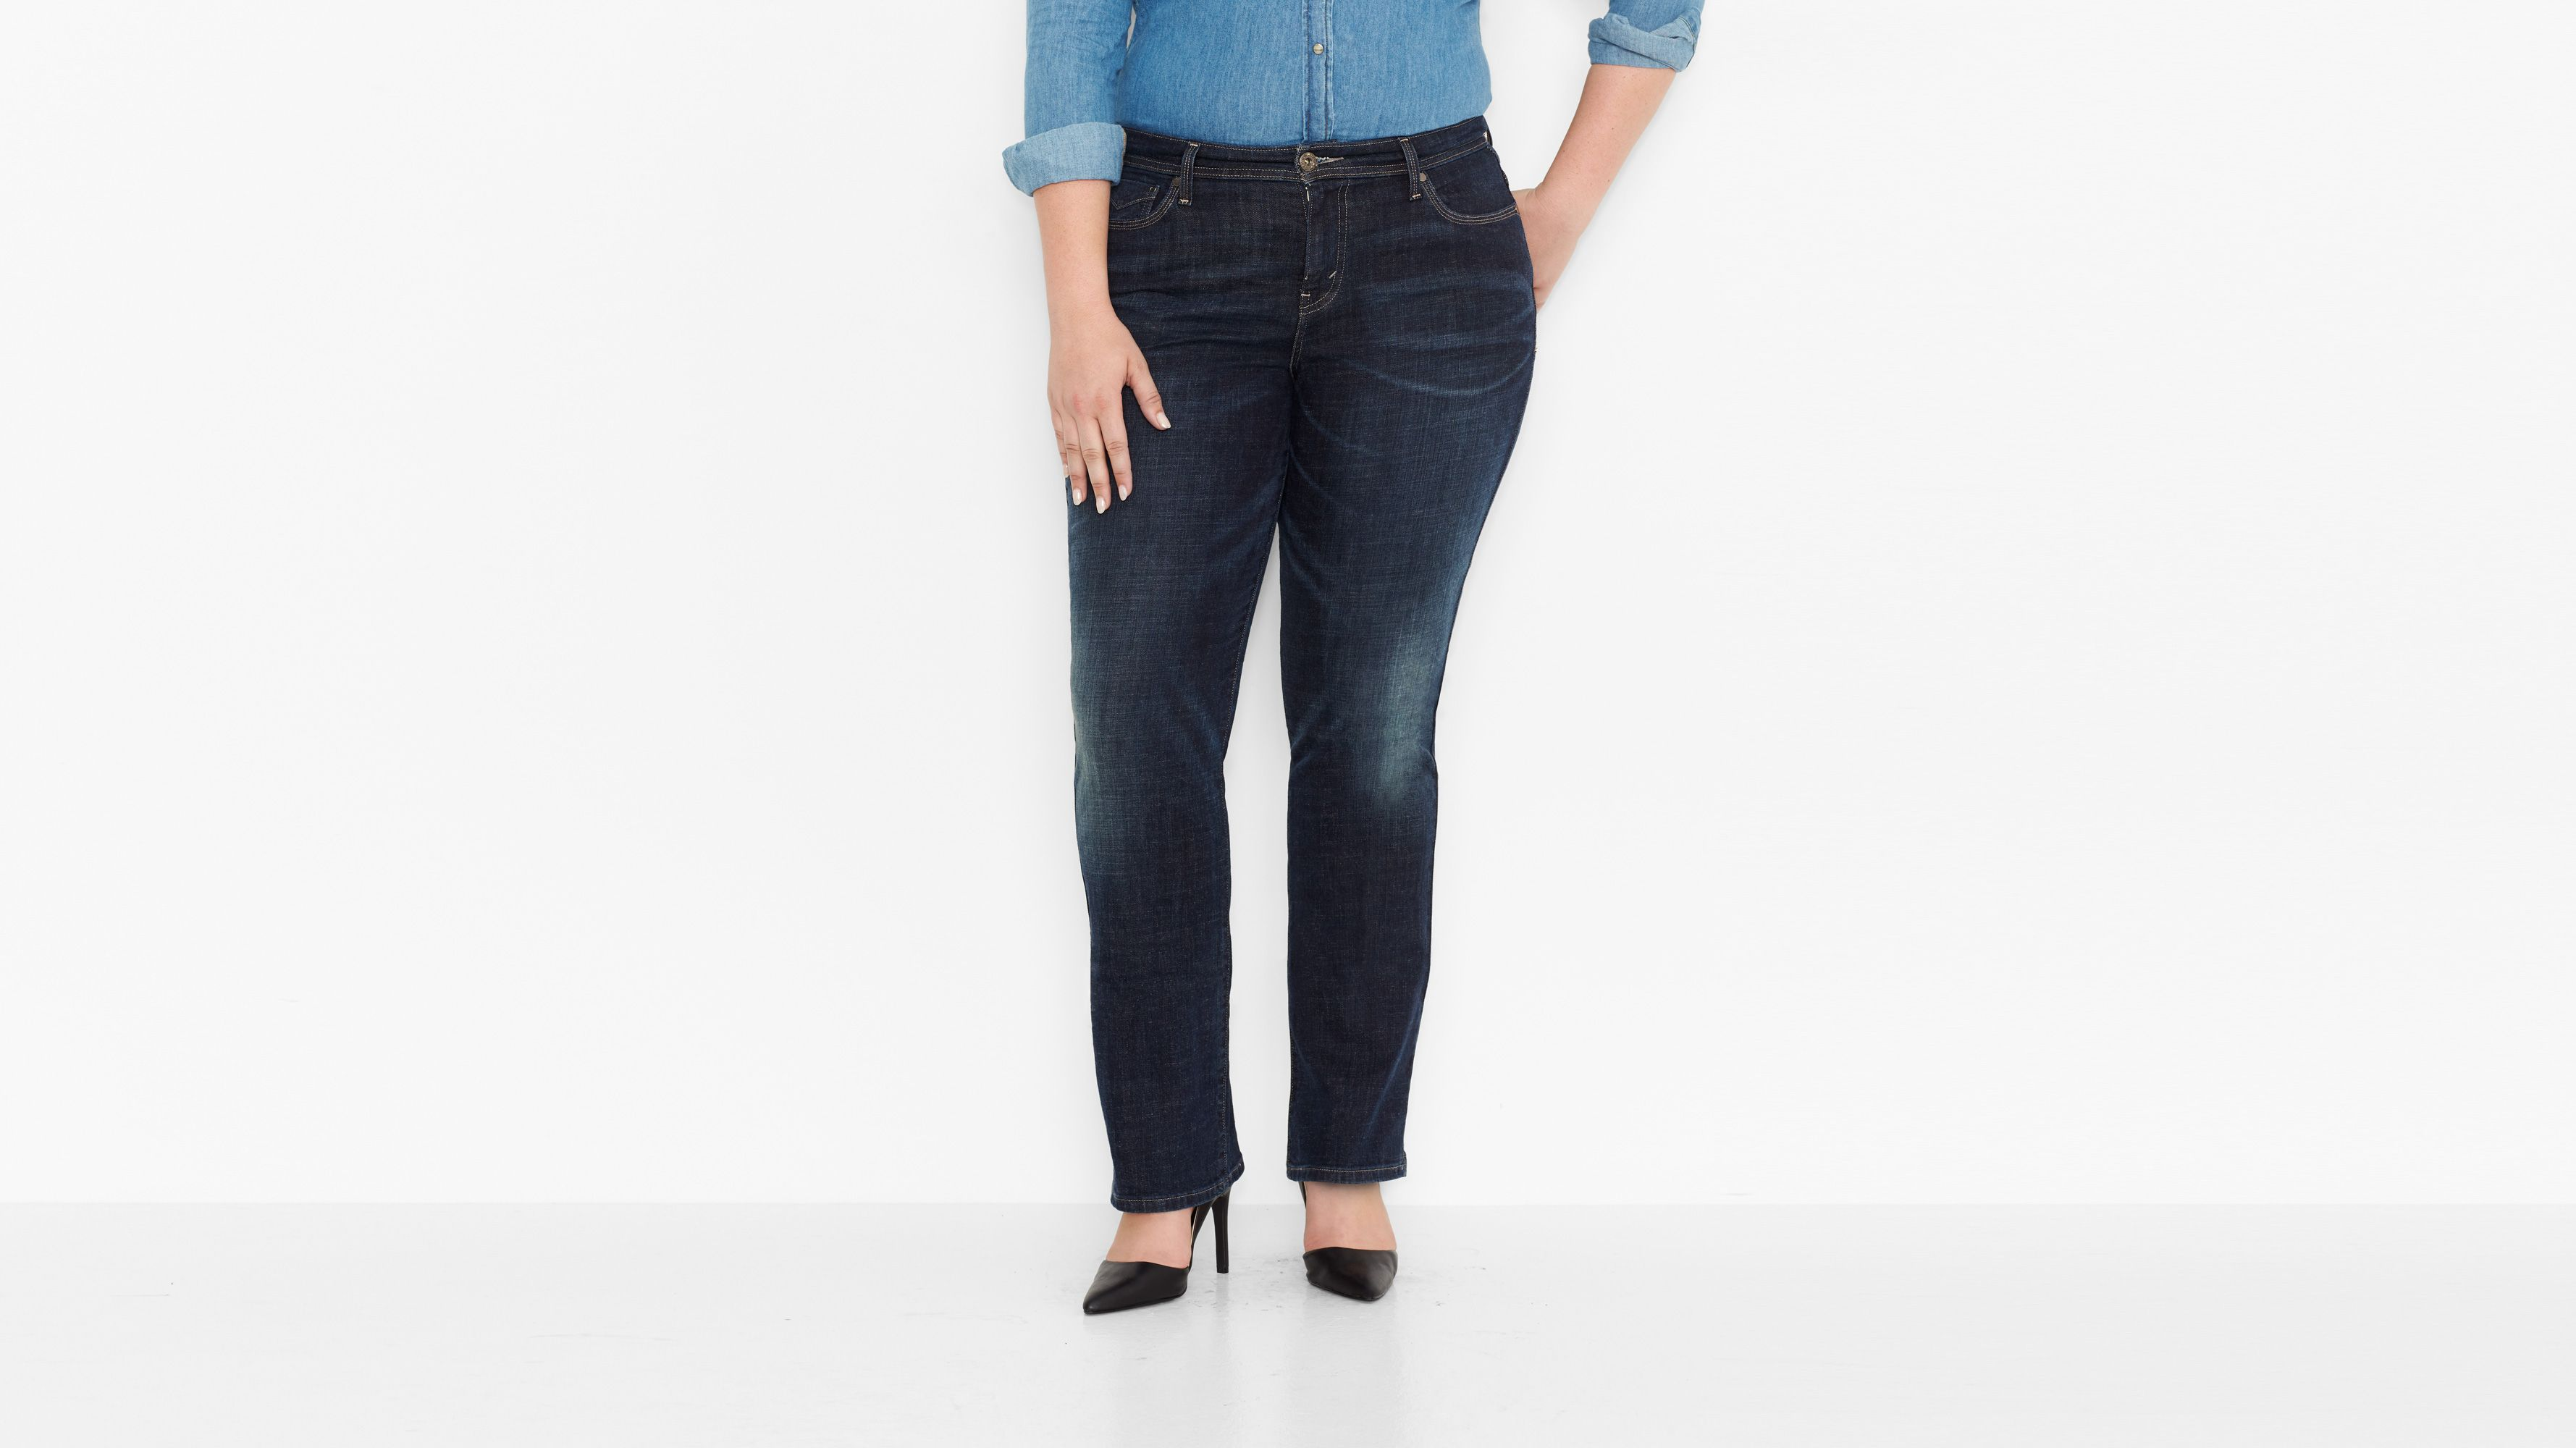 Plus 580 Defined Waist Straight Jeans - Glacier Pacific Sky